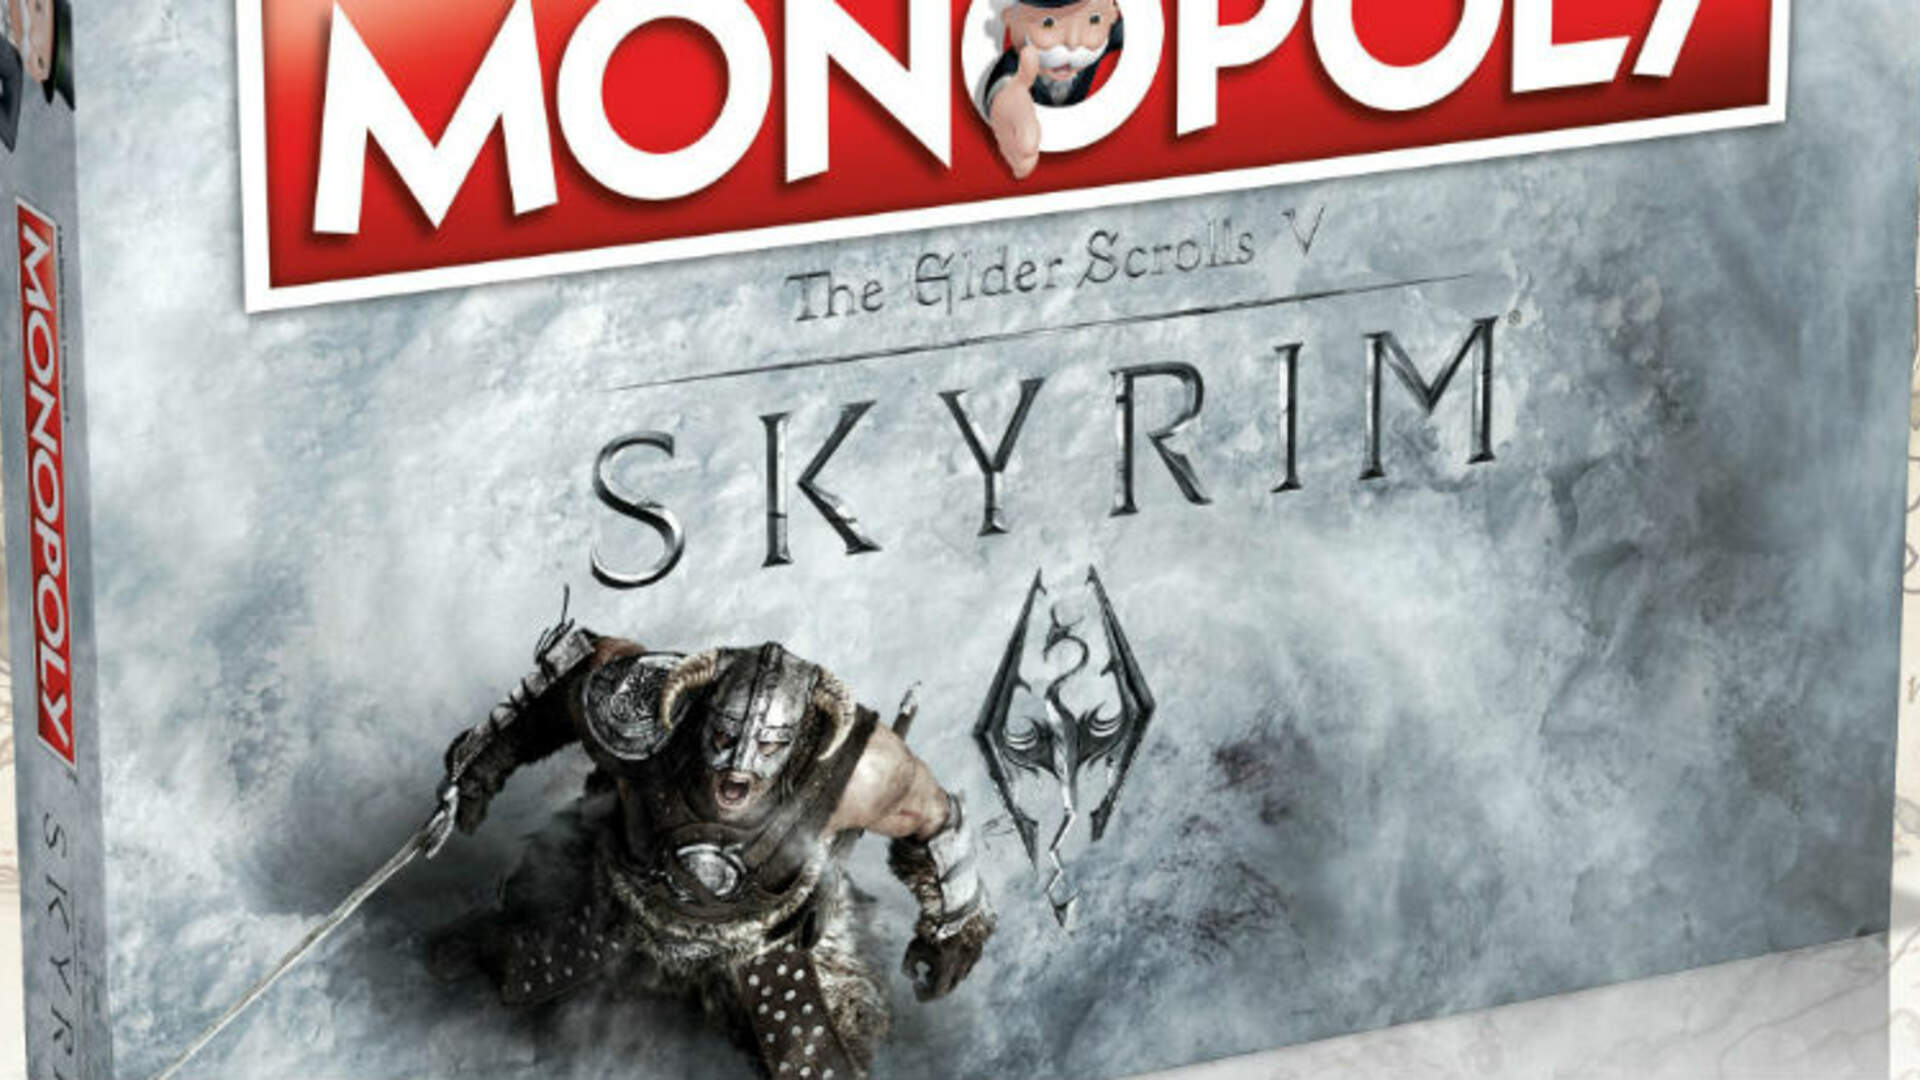 Watch This New Trailer for Skyrim Special Edition, Then Go Pre-Order Skyrim Monopoly